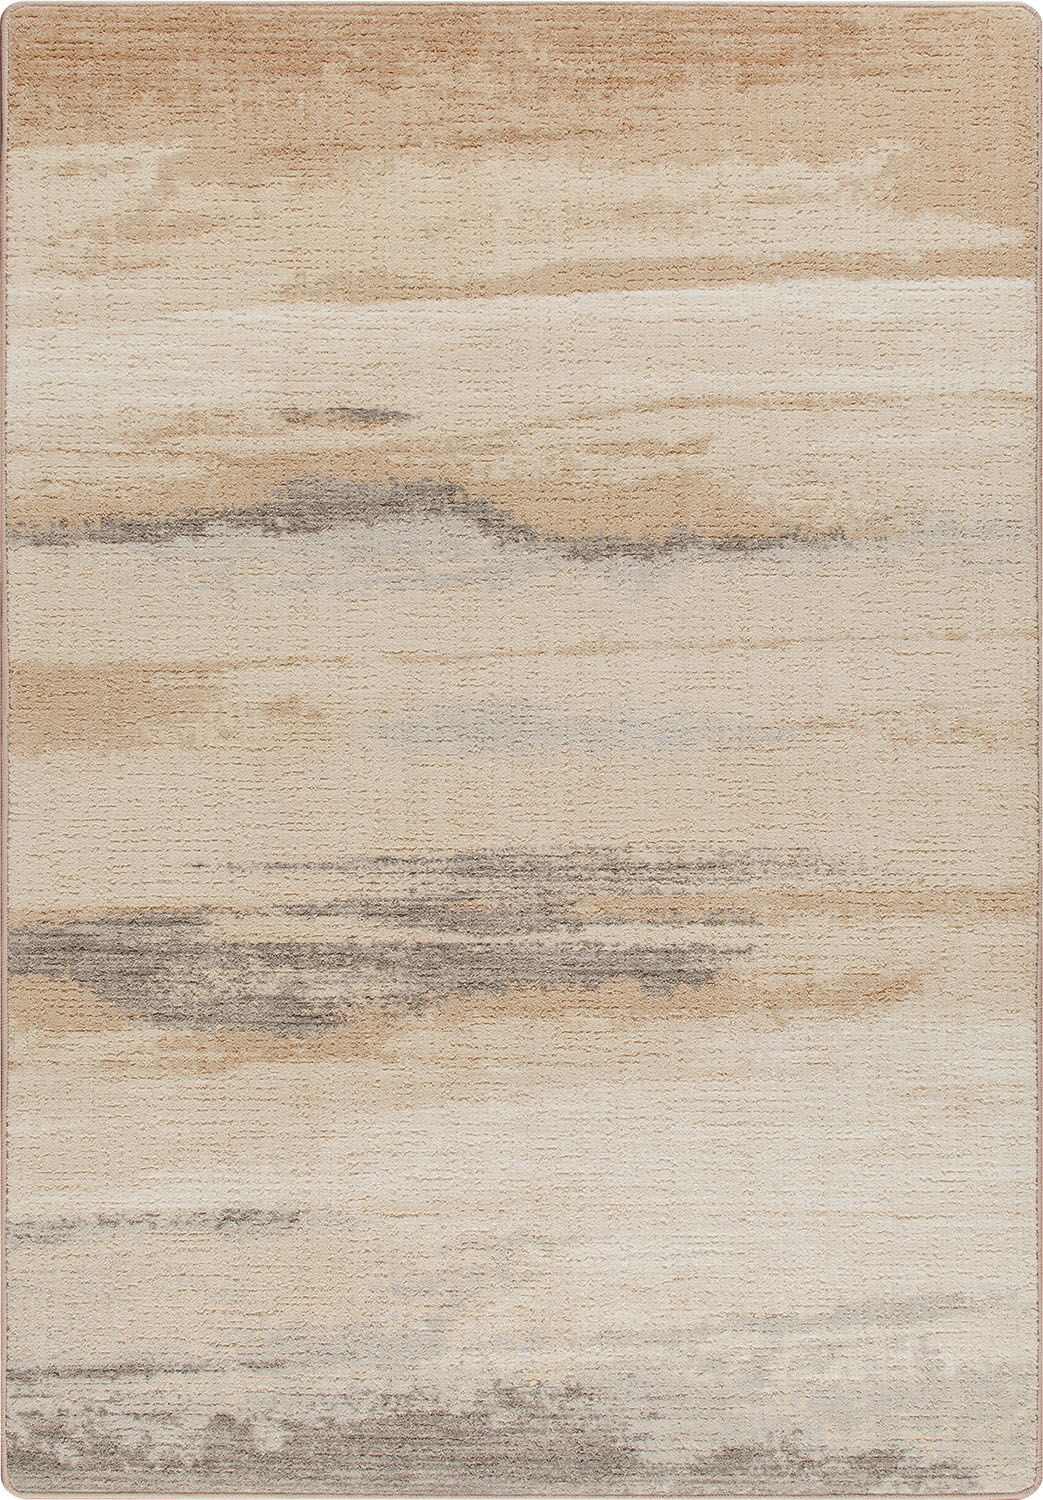 Mix and Mingle Hand-Tufted Brown/Tan Area Rug Rug Size: Runner 2'1